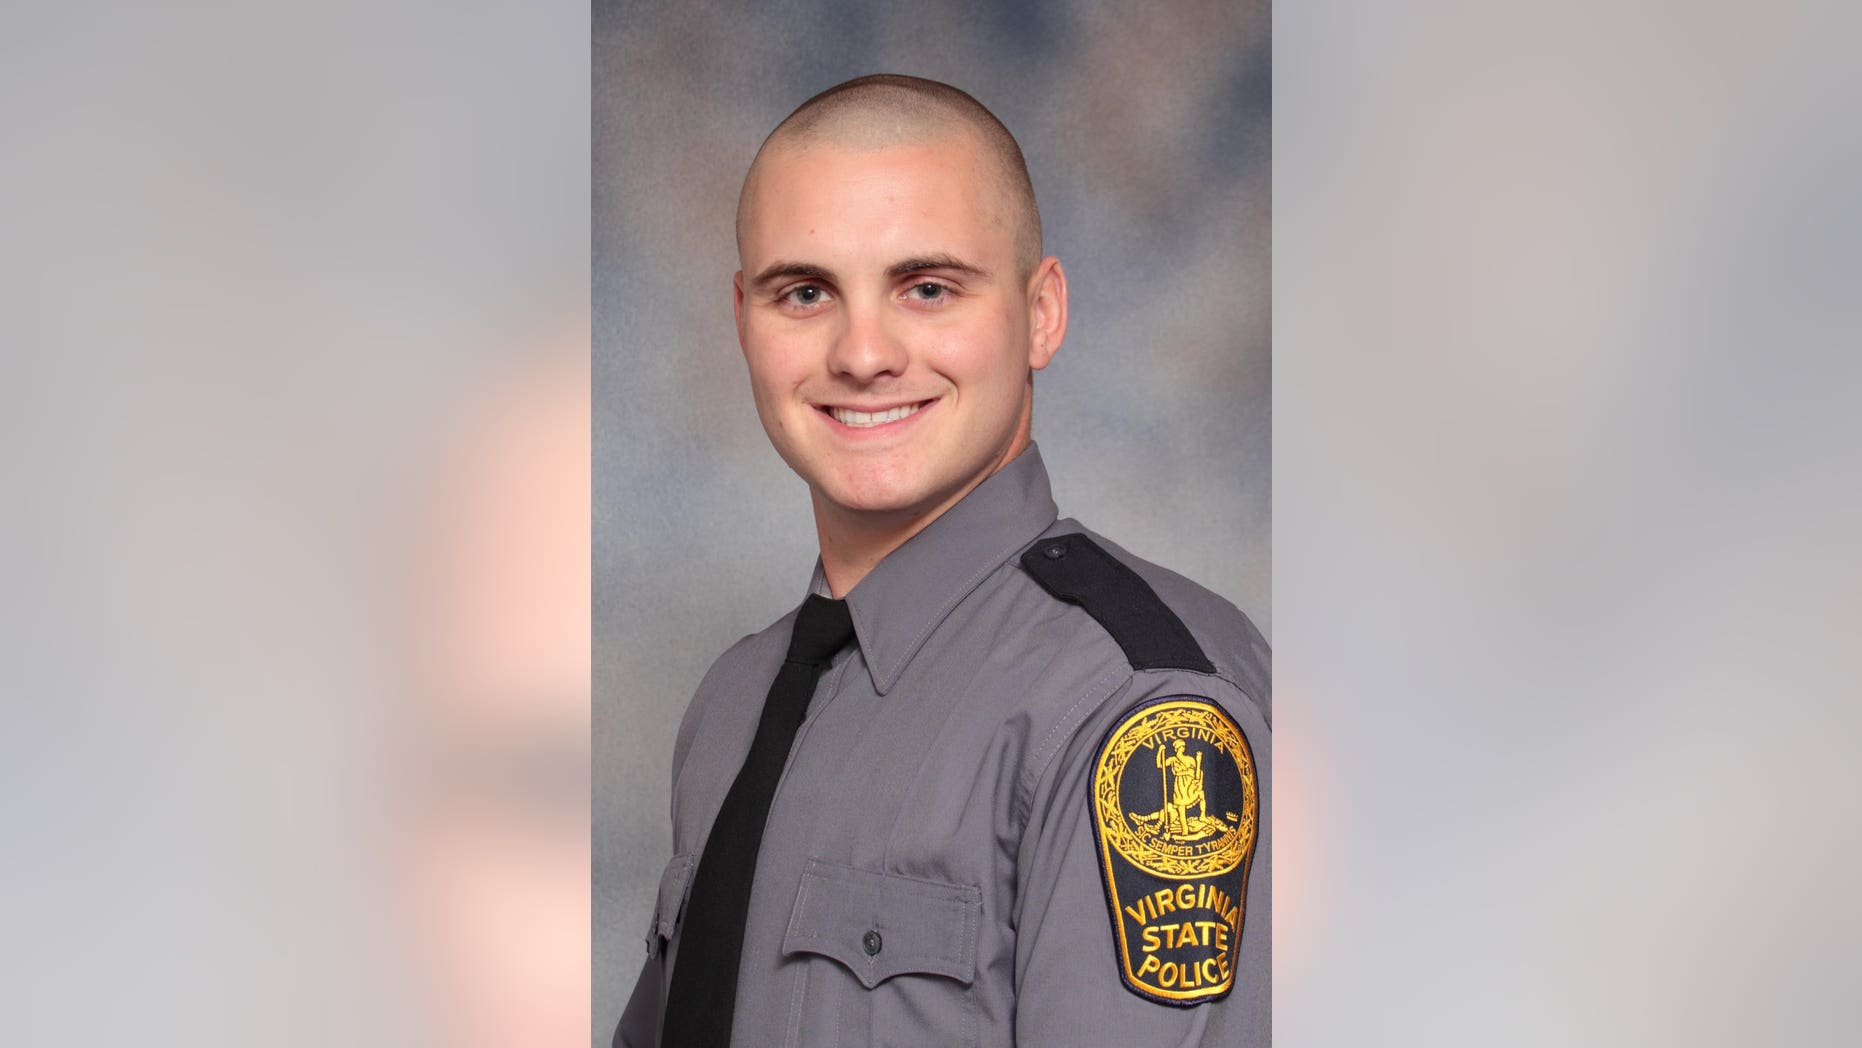 Virginia State Police Trooper Lucas Dowell died after a shooting broke out during an attempt to serve a search warrant in Farmville late Monday.